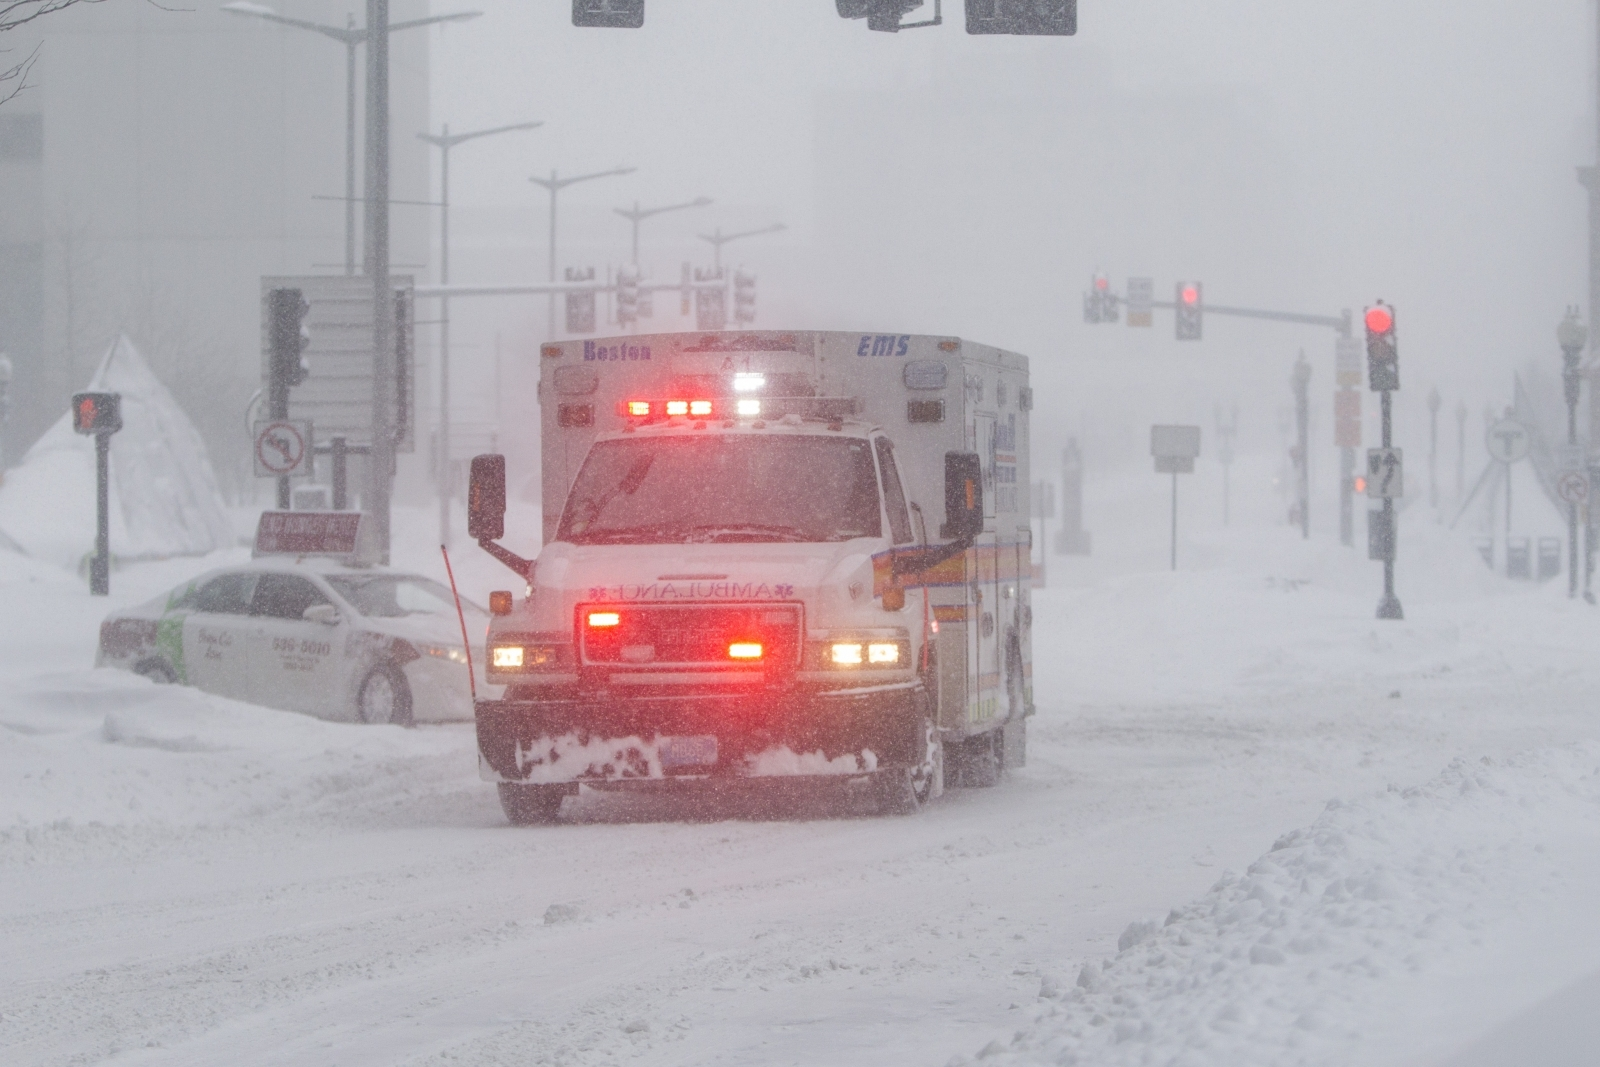 Video of passers-by helping tow ambulance on snow-covered street goes viral